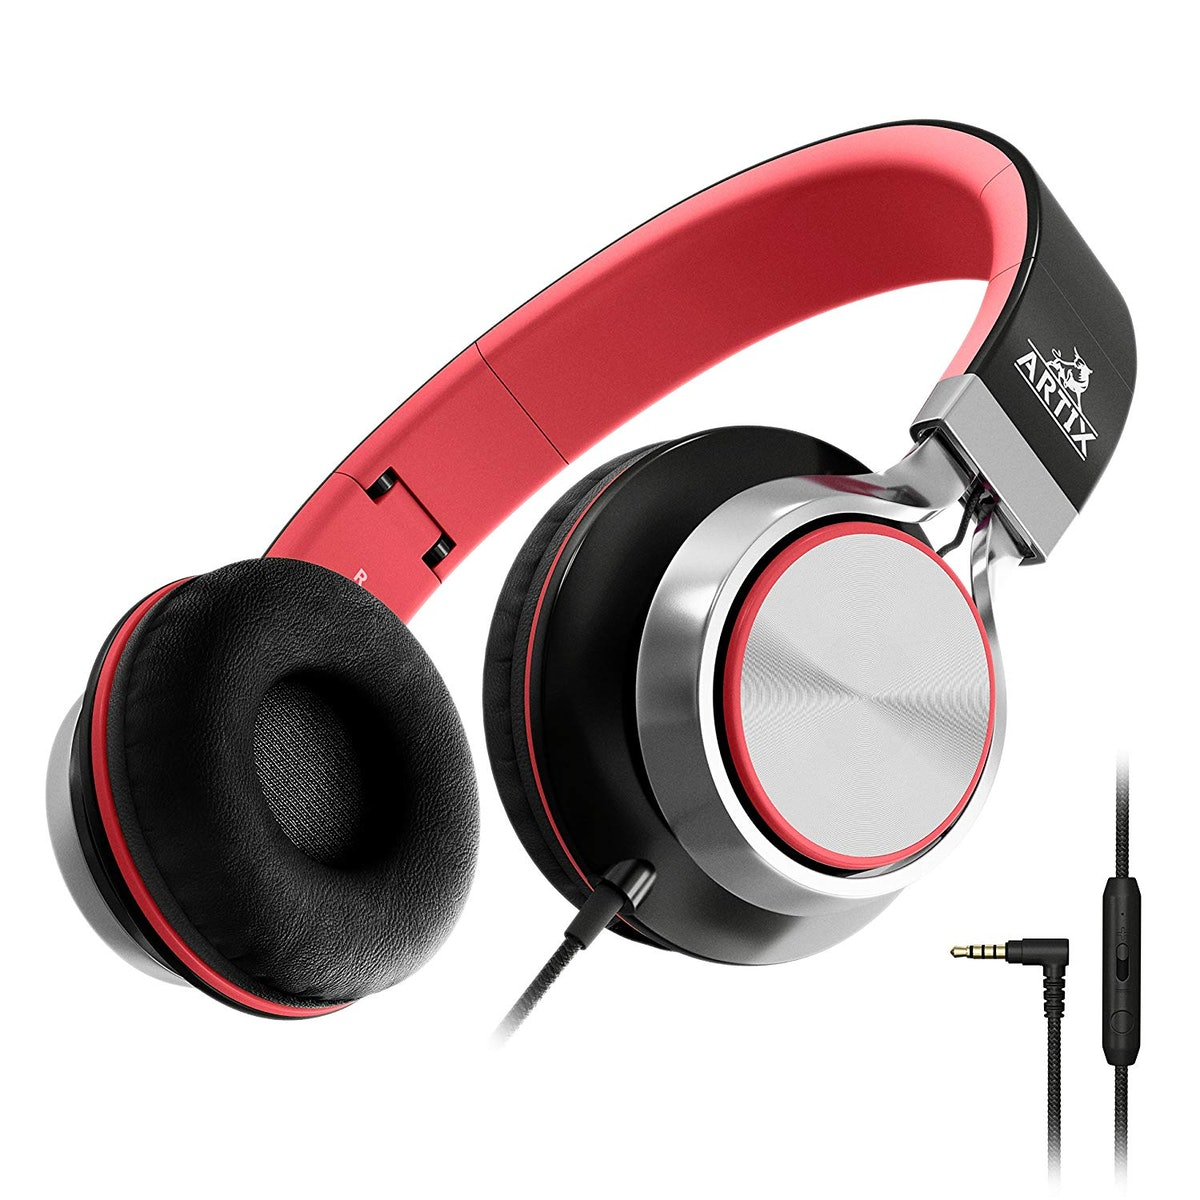 Artix CL750 Foldable Headphones with Microphone and Volume Control, On-Ear Stereo Earphones, Headset...